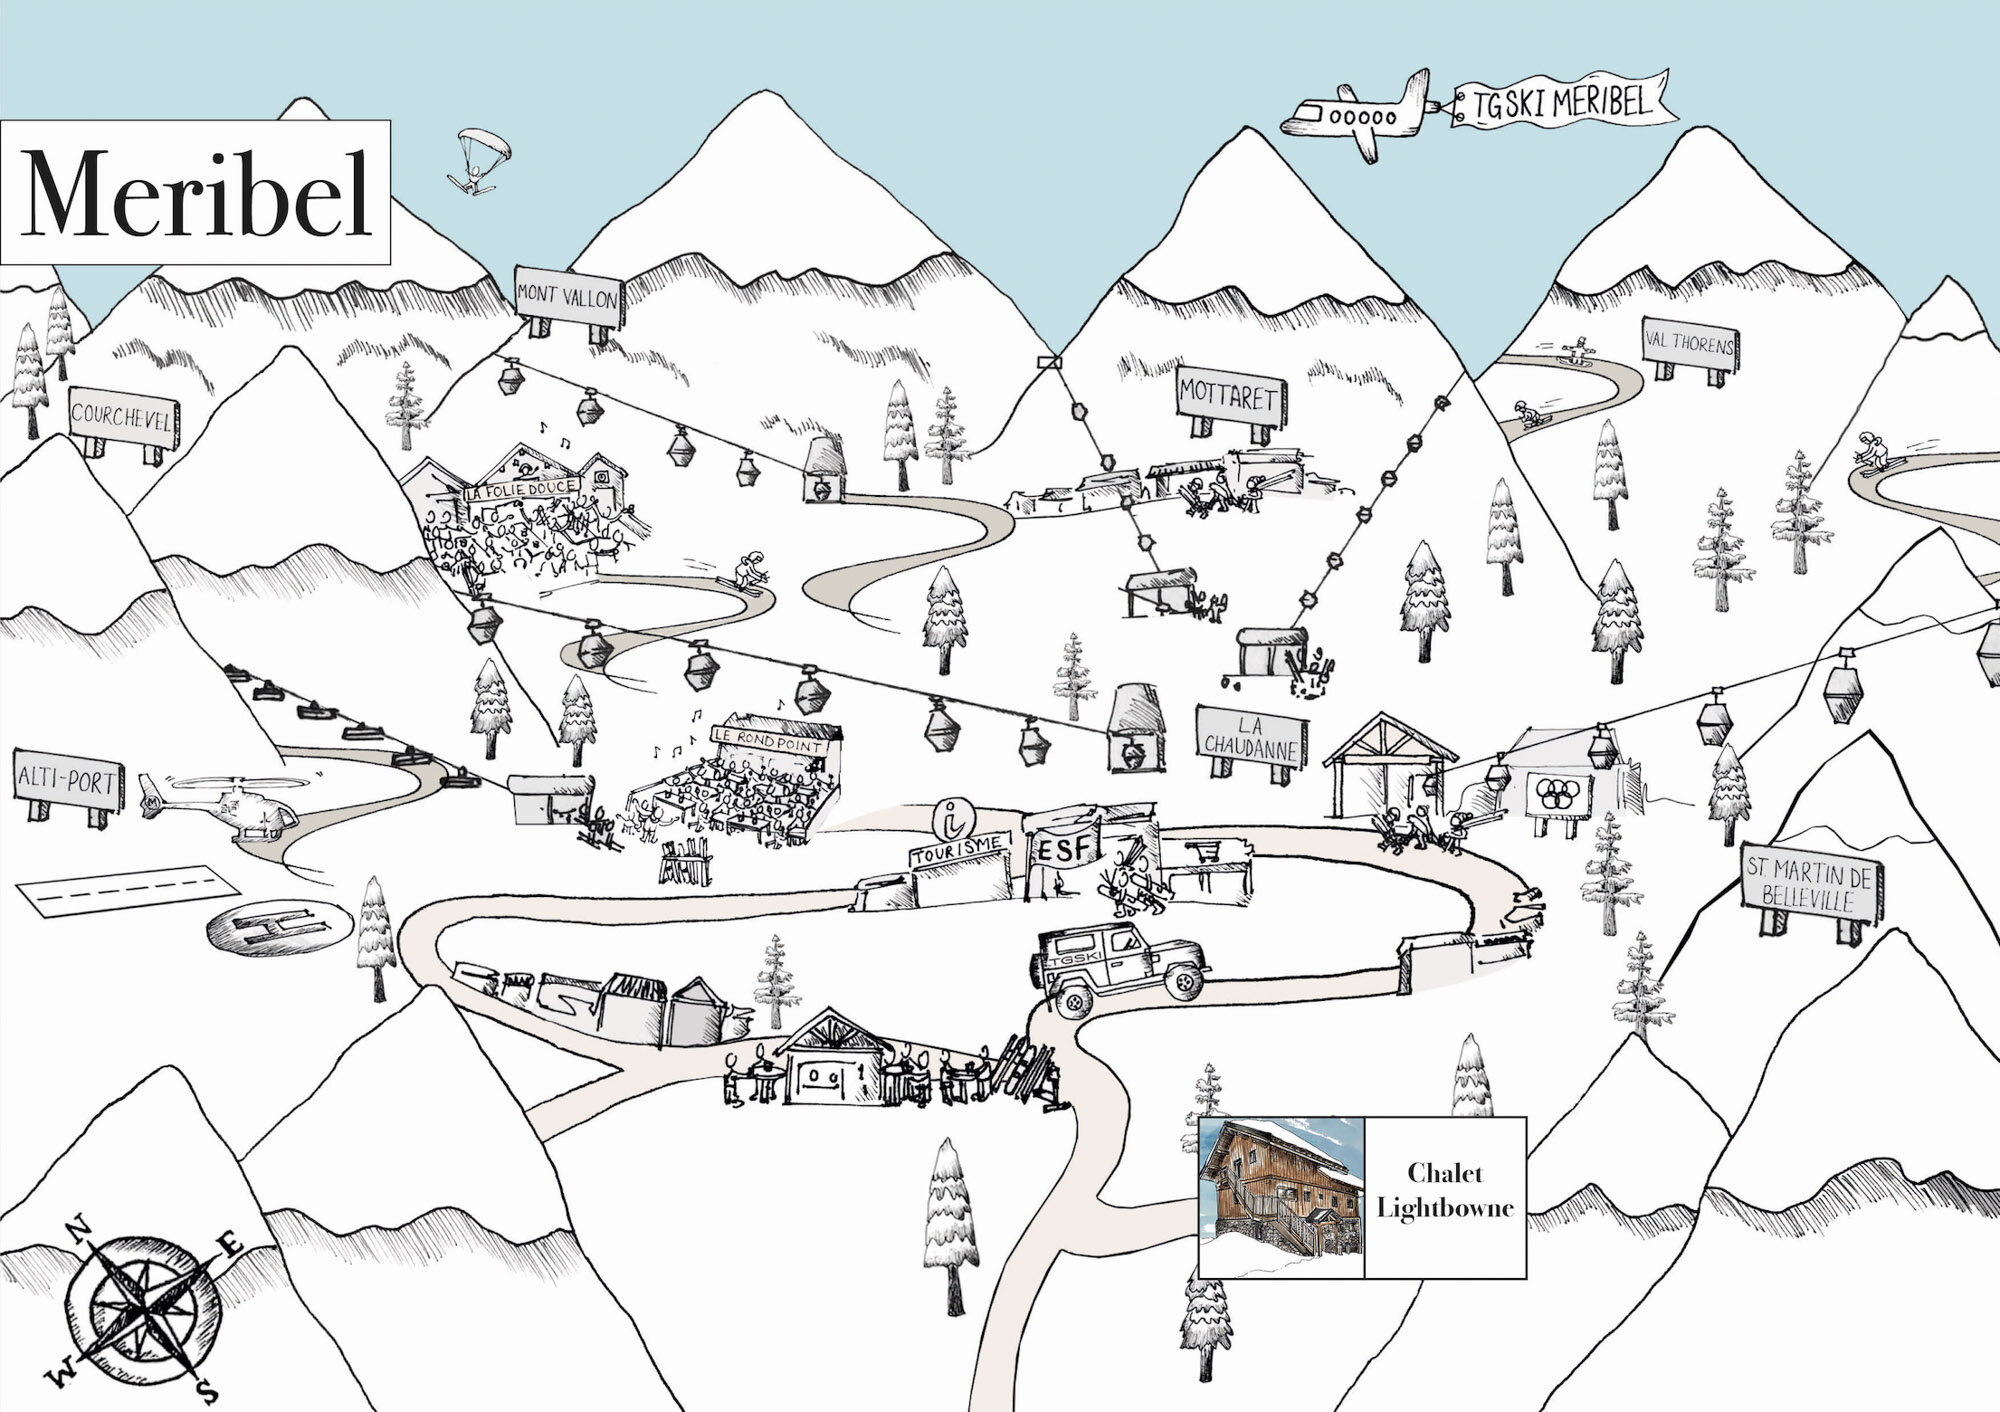 luxury-ski-chalet-Lightbowne-map-of-meribel.jpg